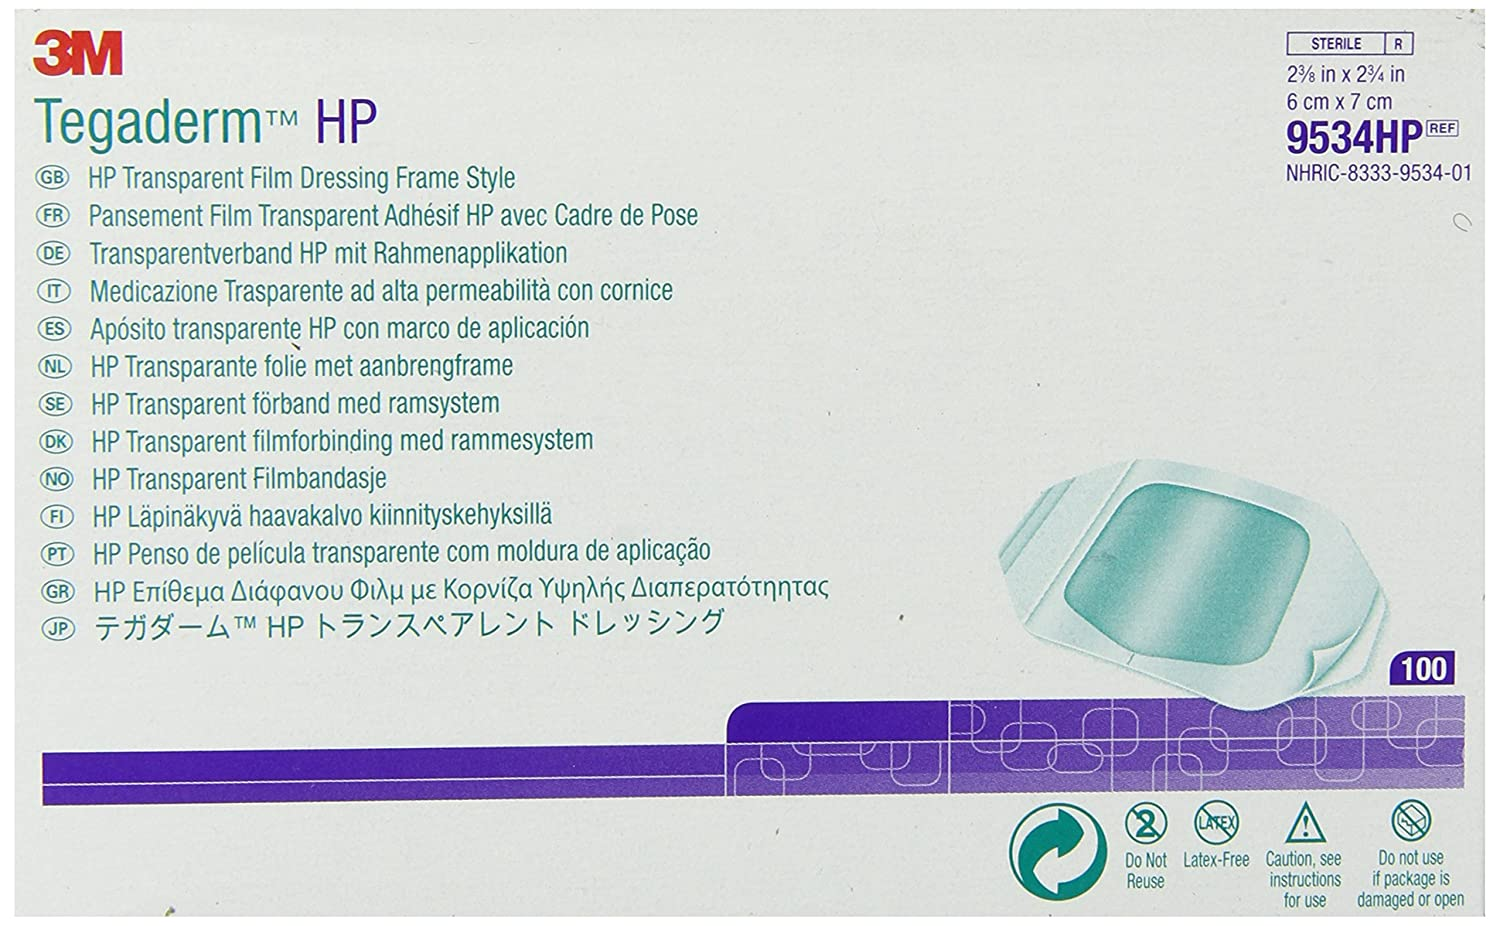 3M Tegaderm HP Transparent Film 4 years warranty Frame Dressing Product Style 9534HP